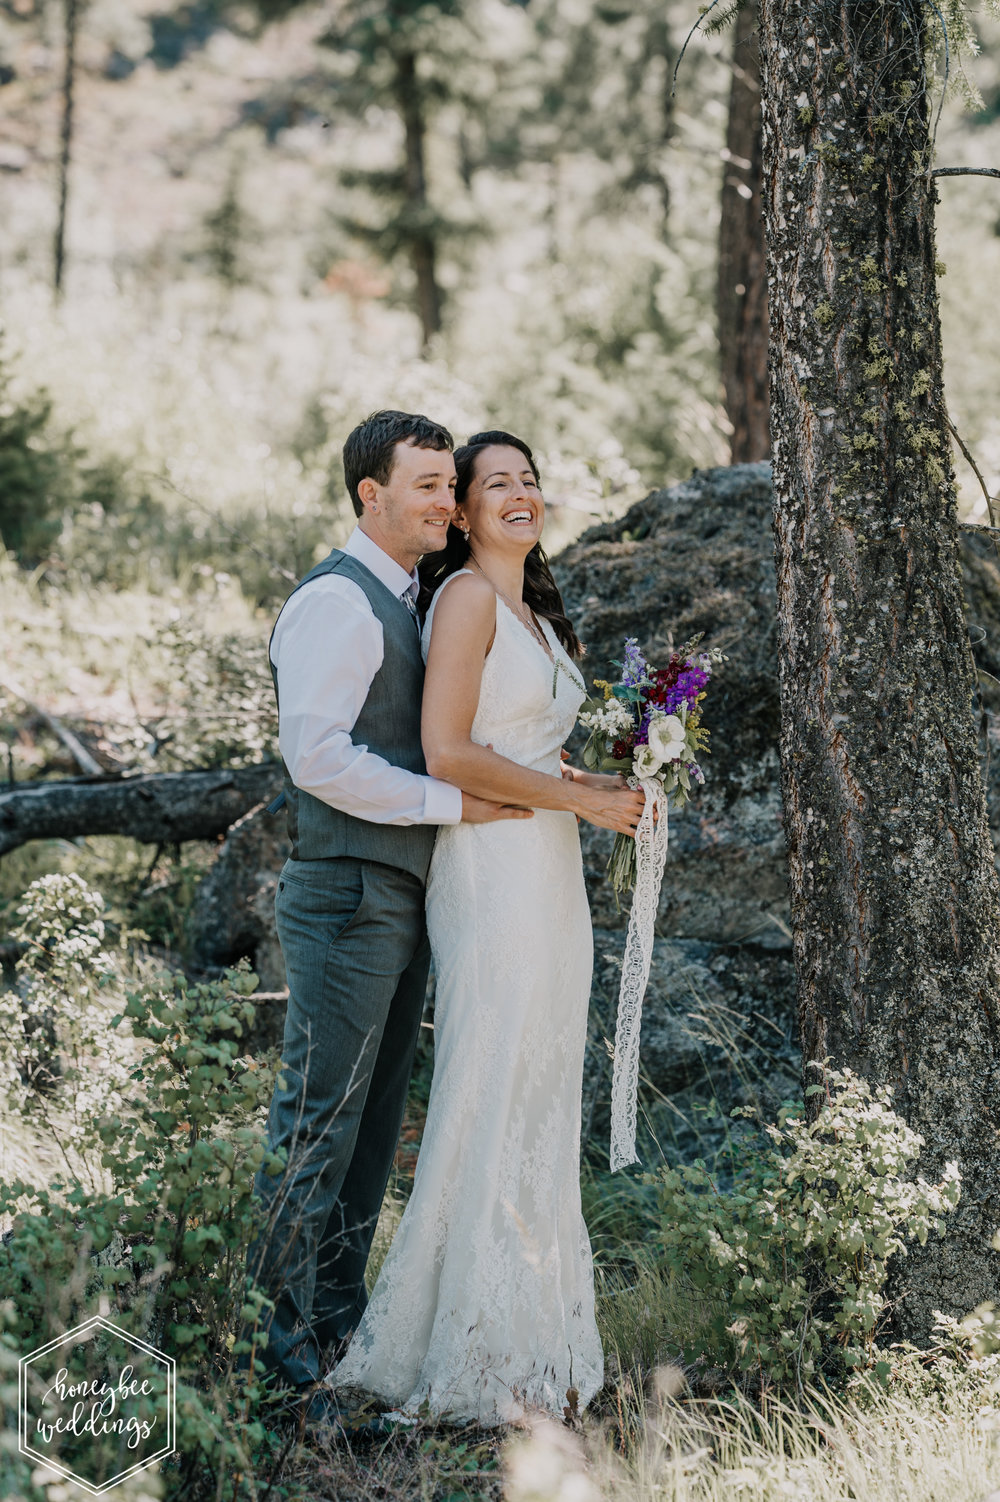 208 White Raven Wedding_Montana Wedding Photographer_Honeybee Weddings_ Meghan Maloney + Arza Hammond 2018-8466.jpg